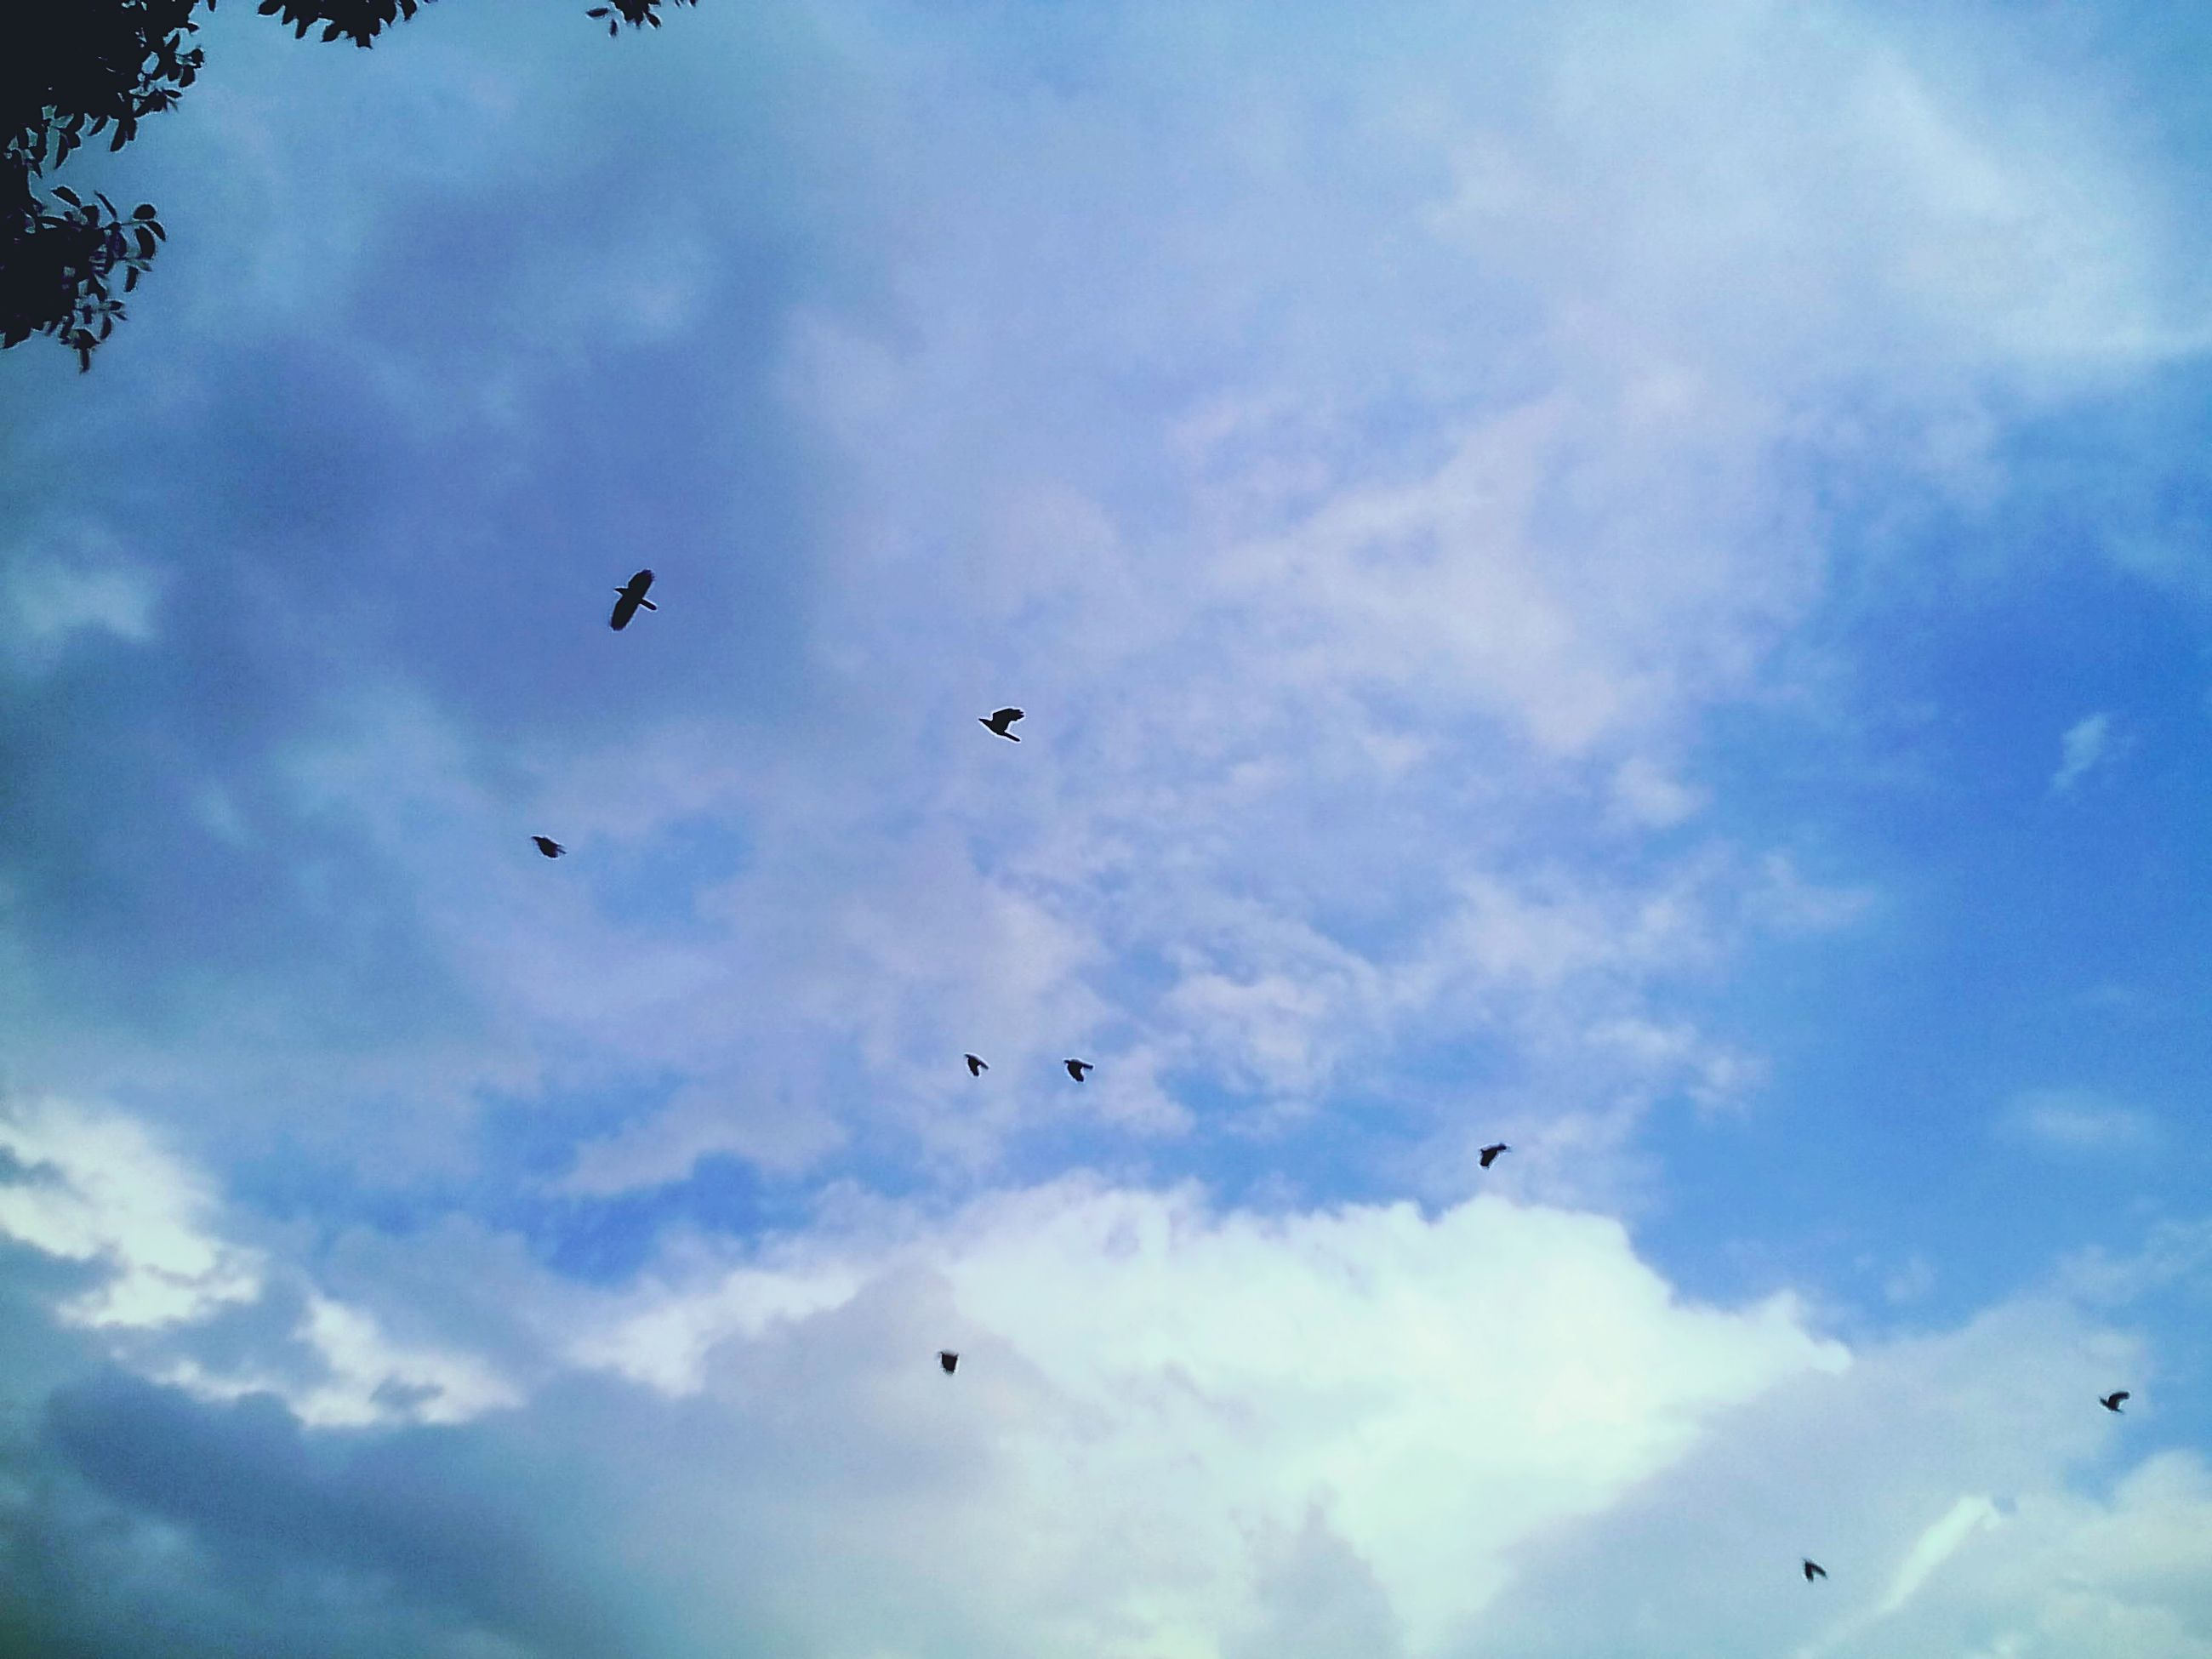 flying, sky, cloud - sky, bird, mid-air, freedom, low angle view, animal themes, nature, outdoors, no people, migrating, day, beauty in nature